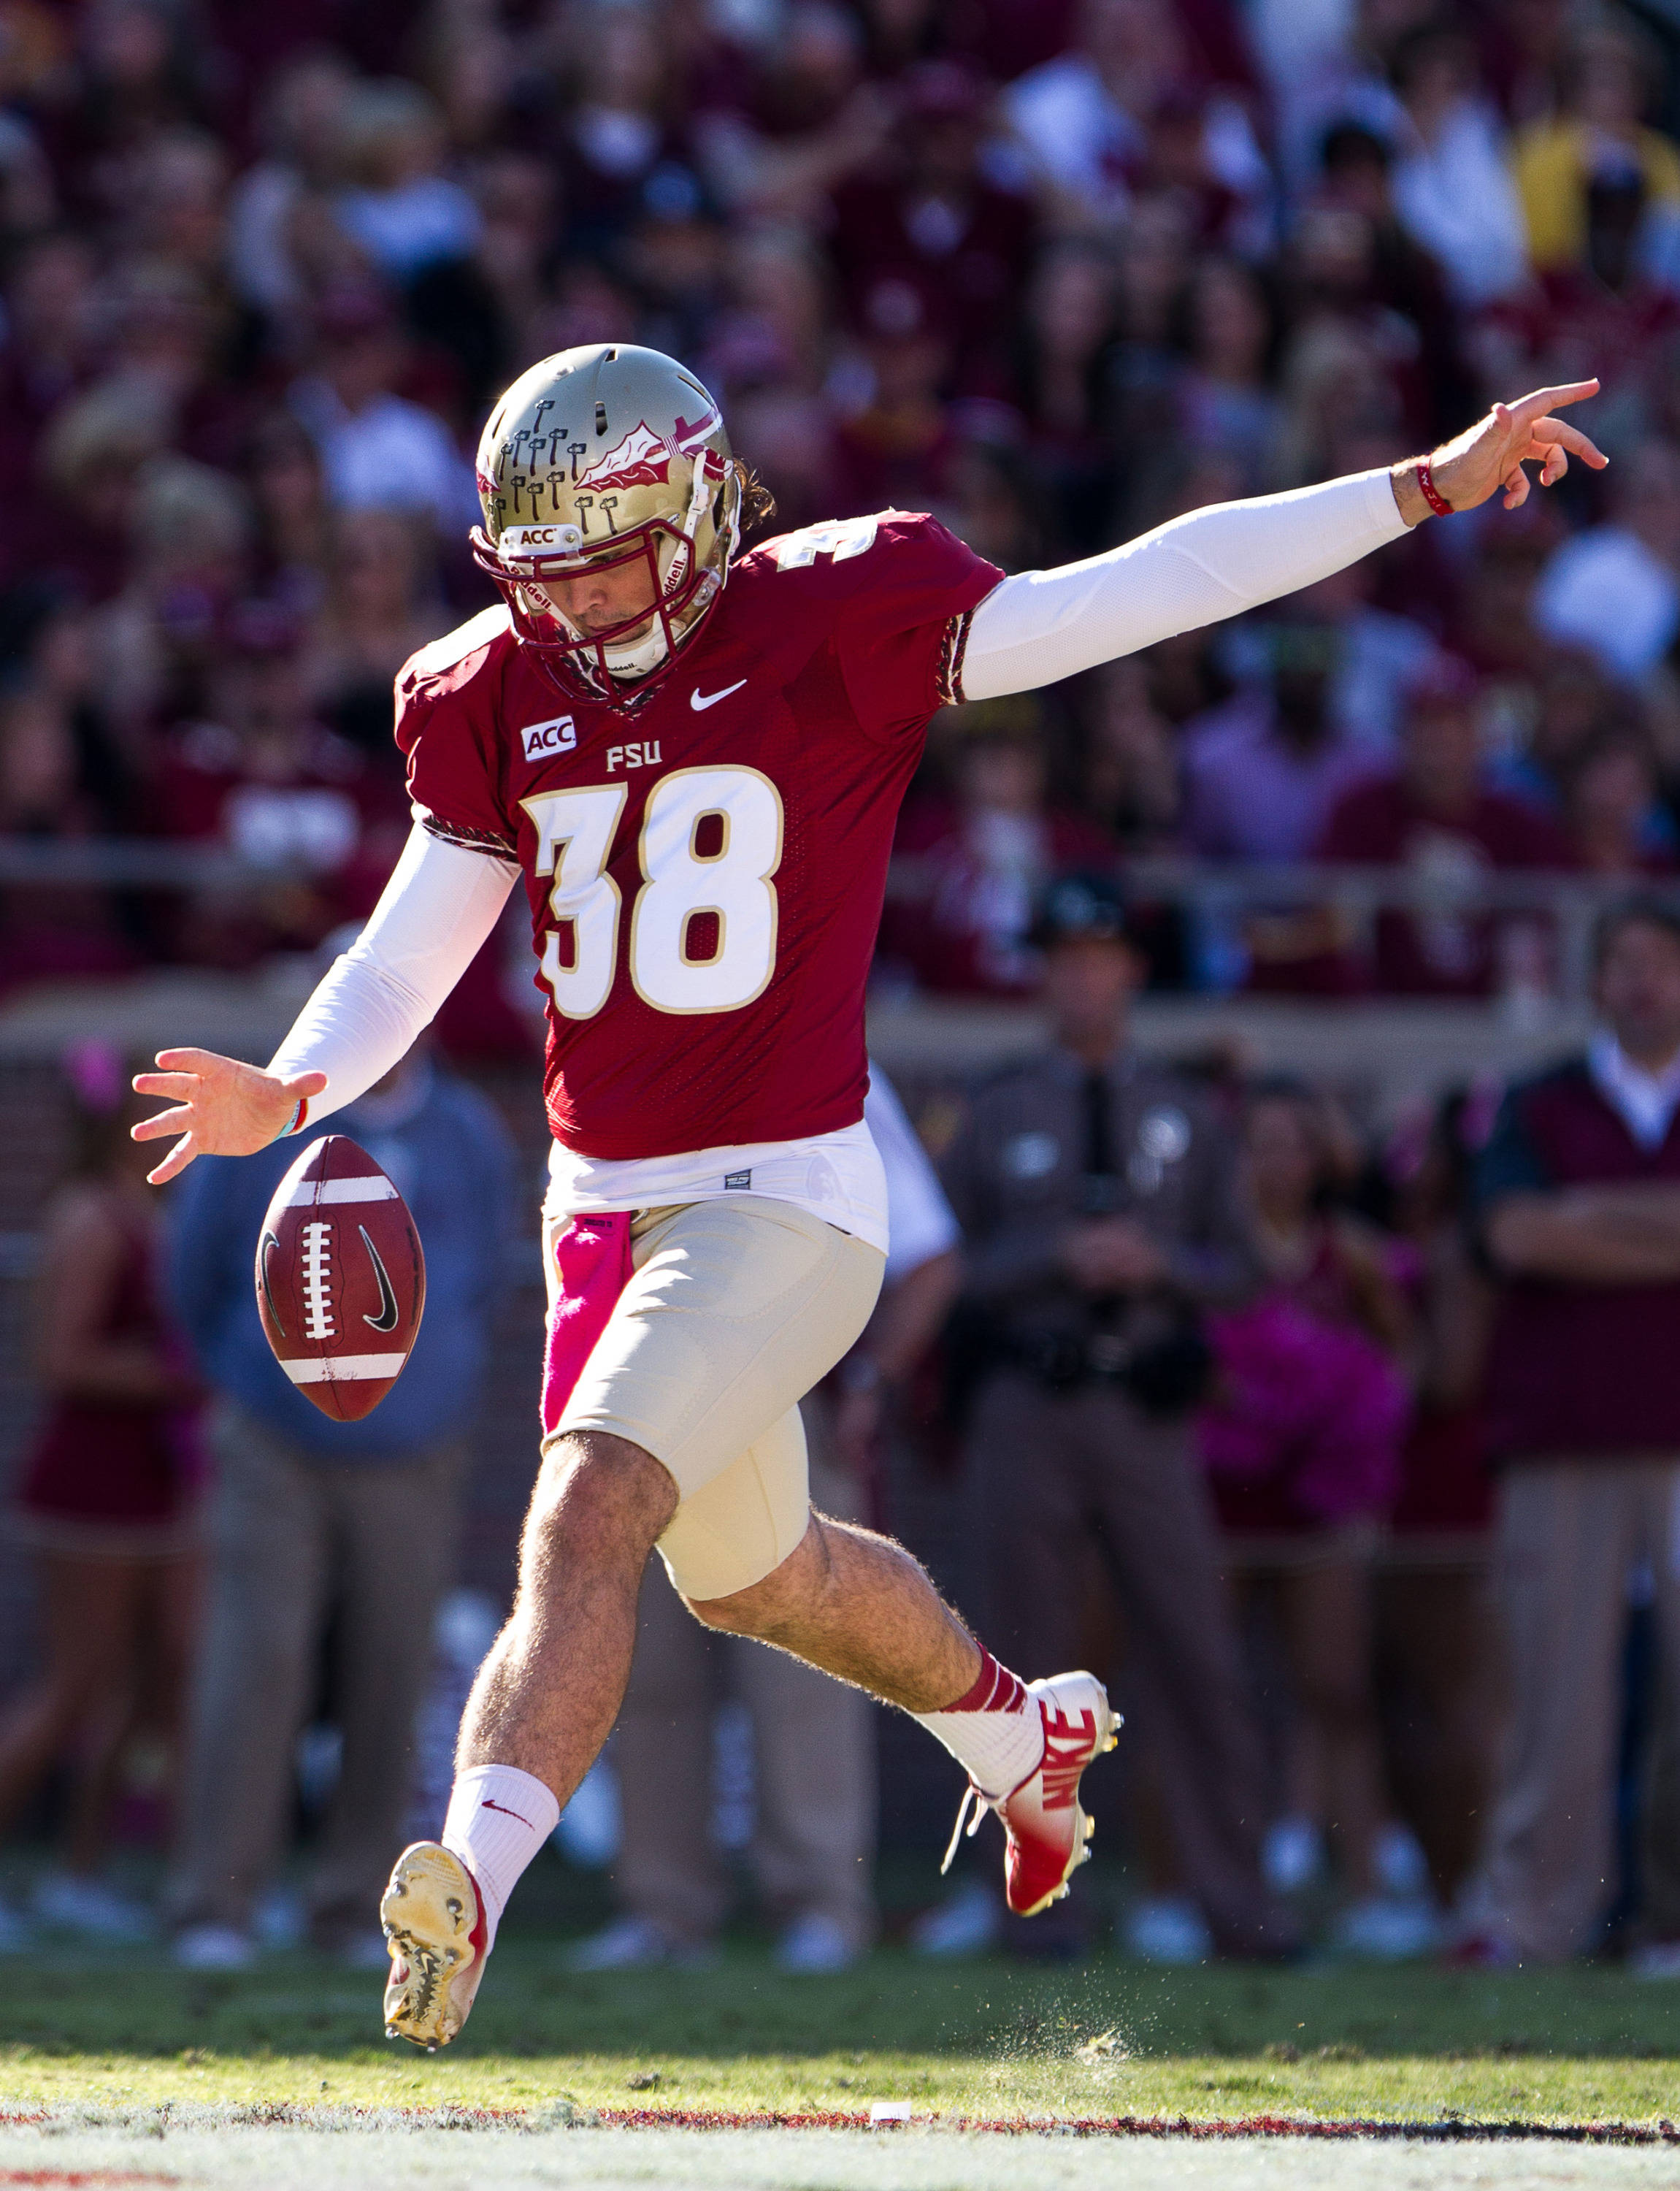 Cason Beatty (38) punts during FSU Football's 49-17 win over NC State on Saturday, October 26, 2013 in Tallahassee, Fla. Photo by Michael Schwarz.